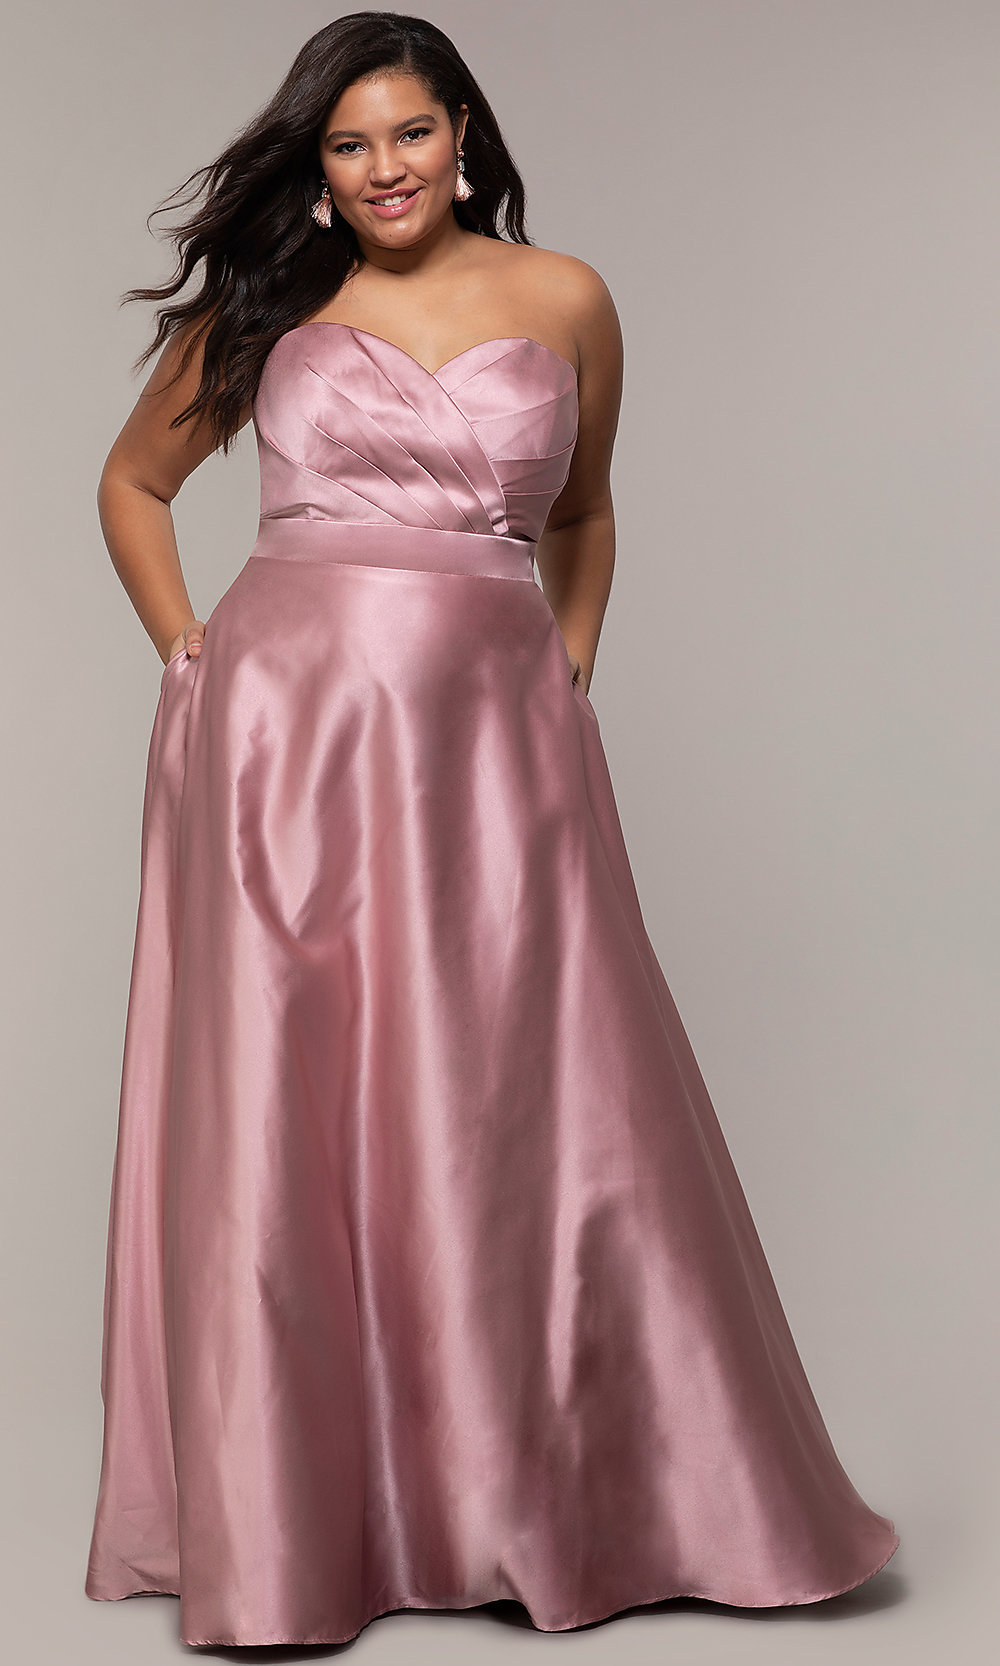 Plus-Size Strapless Sweetheart Prom Dress